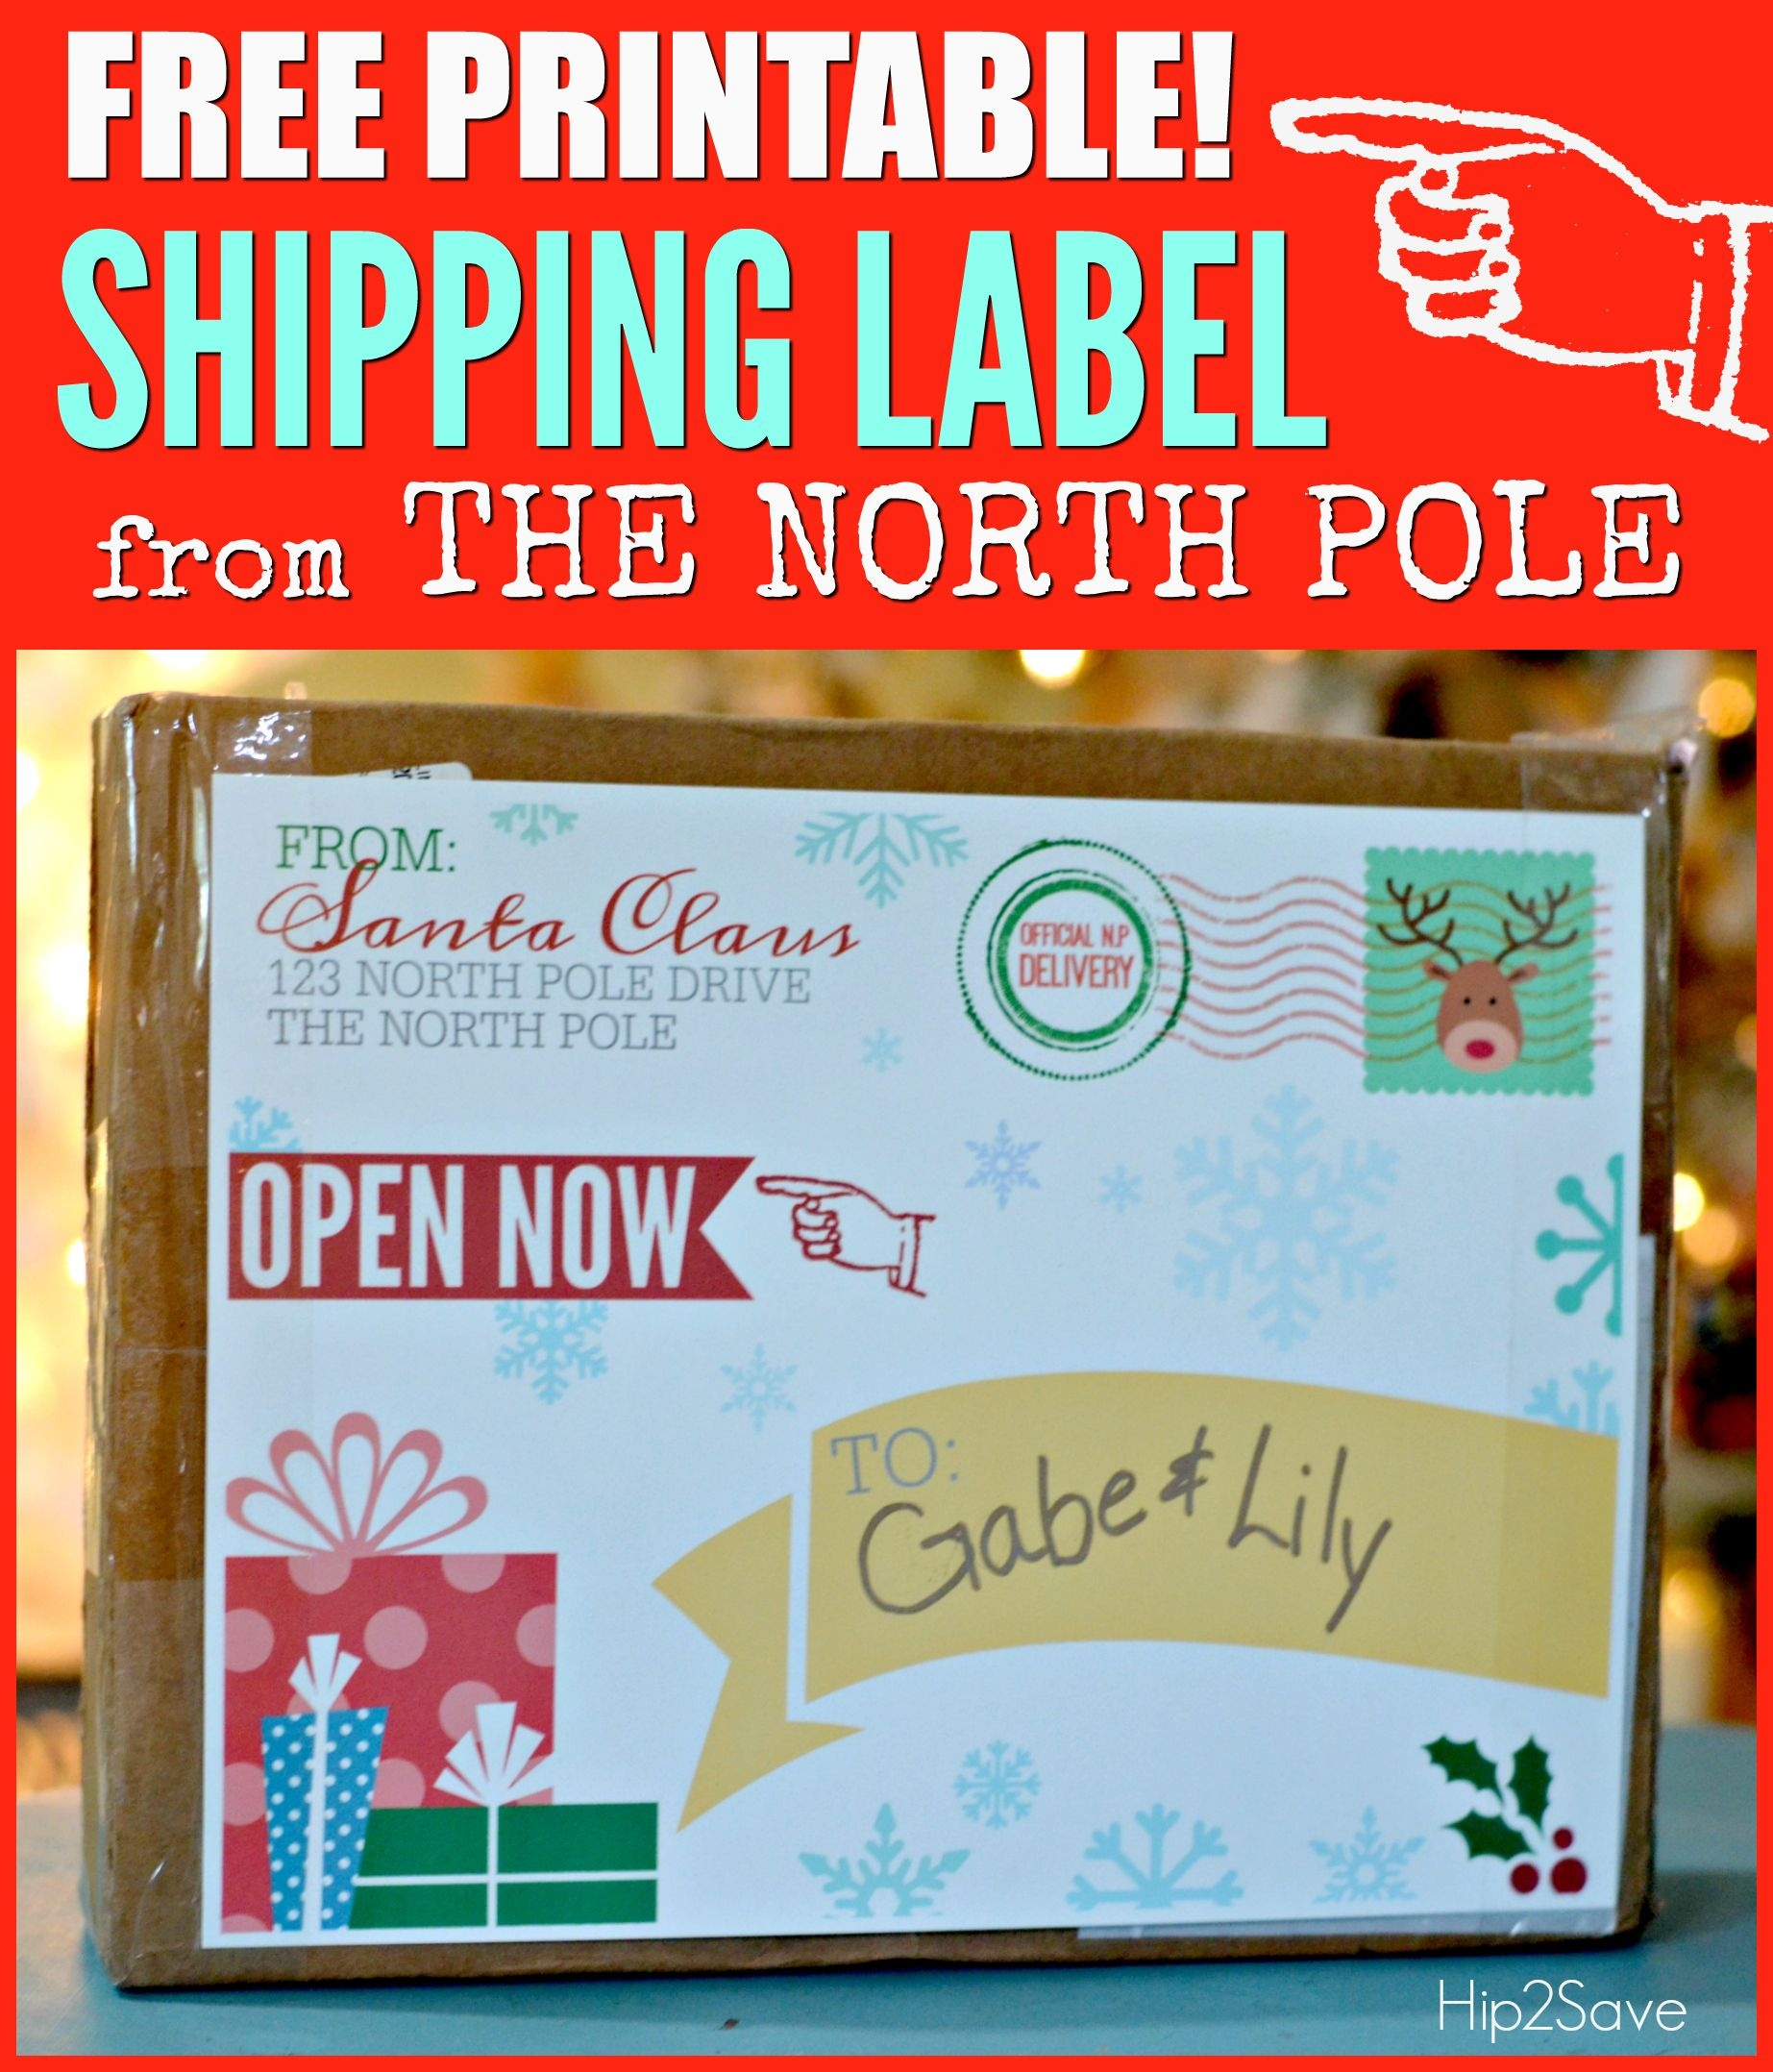 Free Printable Shipping Label From Santa Claus | It's The Most - Free Printable Shipping Labels